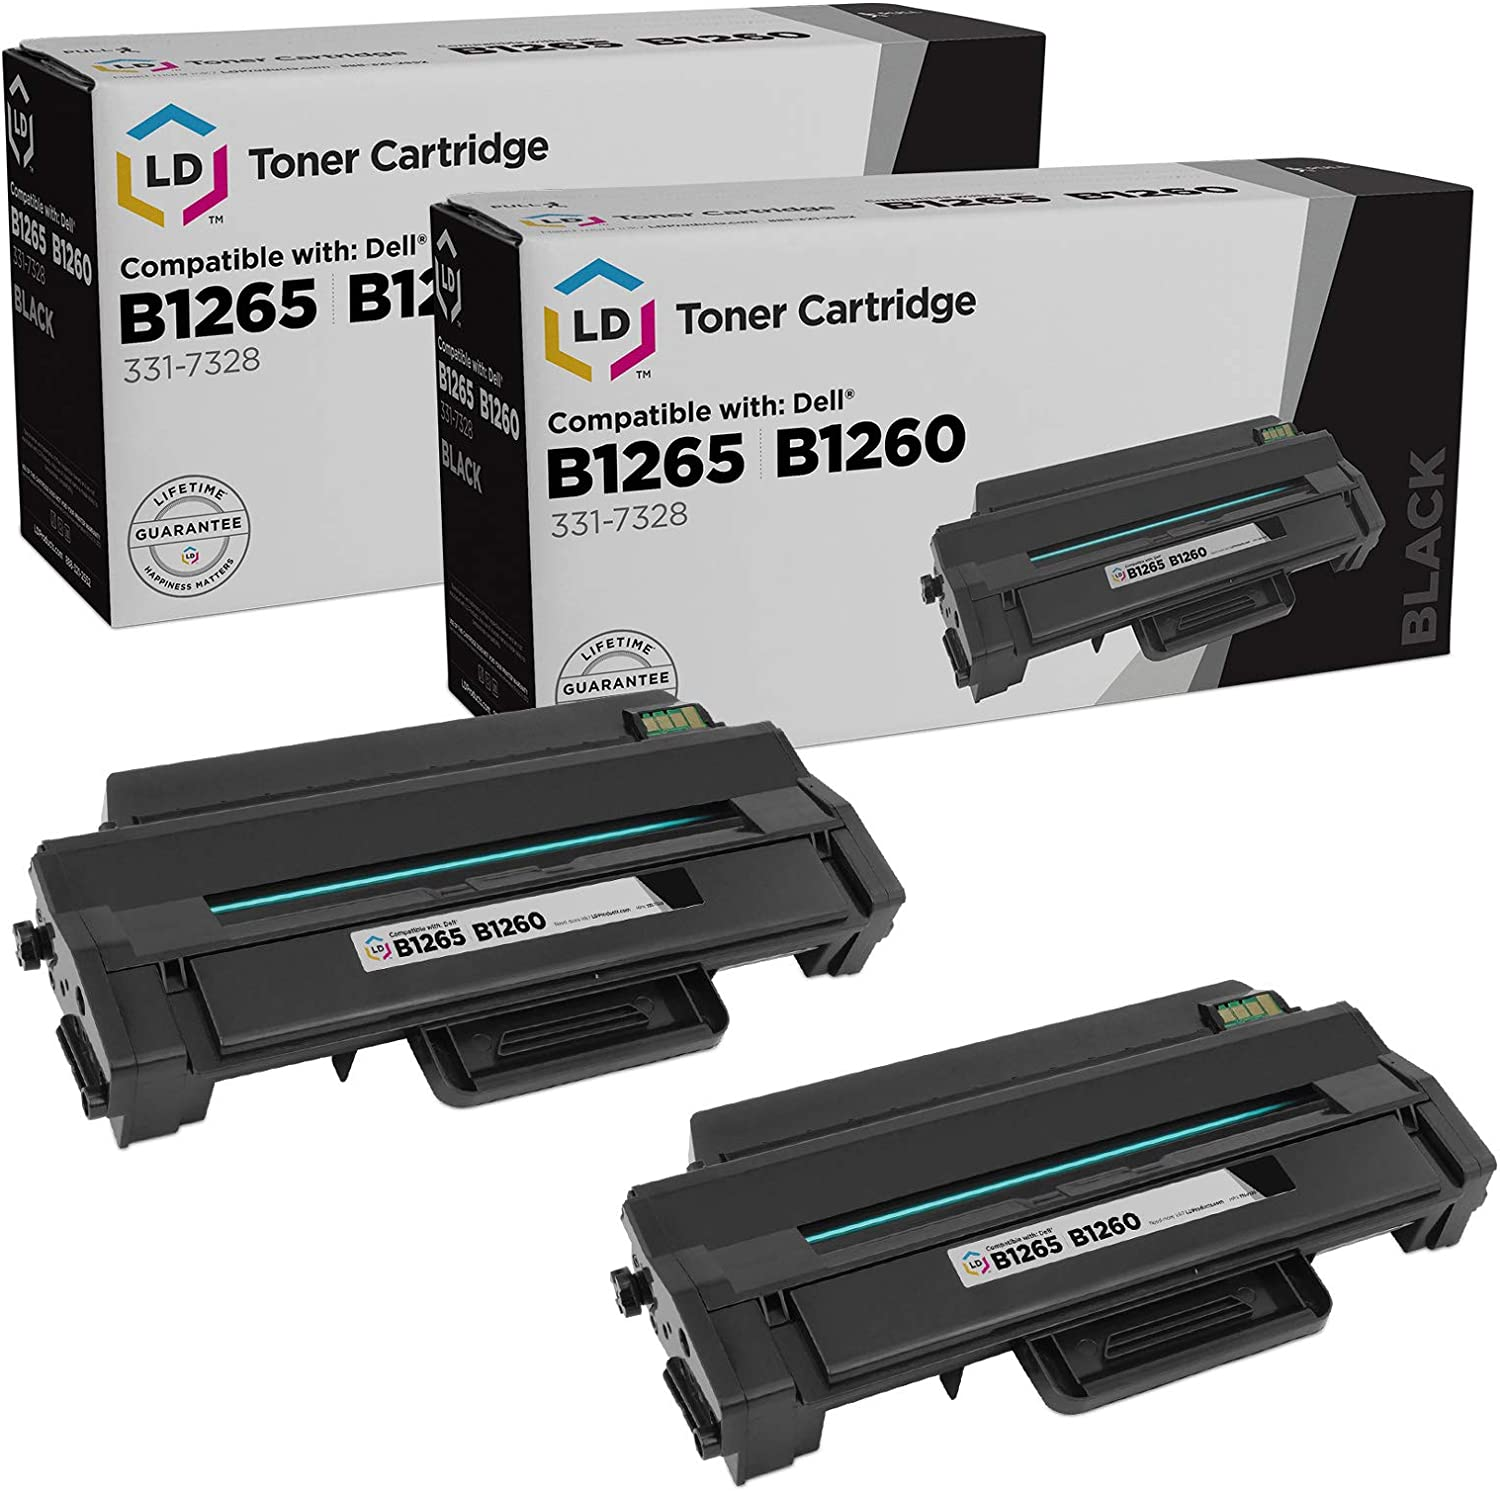 LD Compatible Toner Cartridge Replacement for Dell 331-7328 High Yield (Black, 2-Pack)